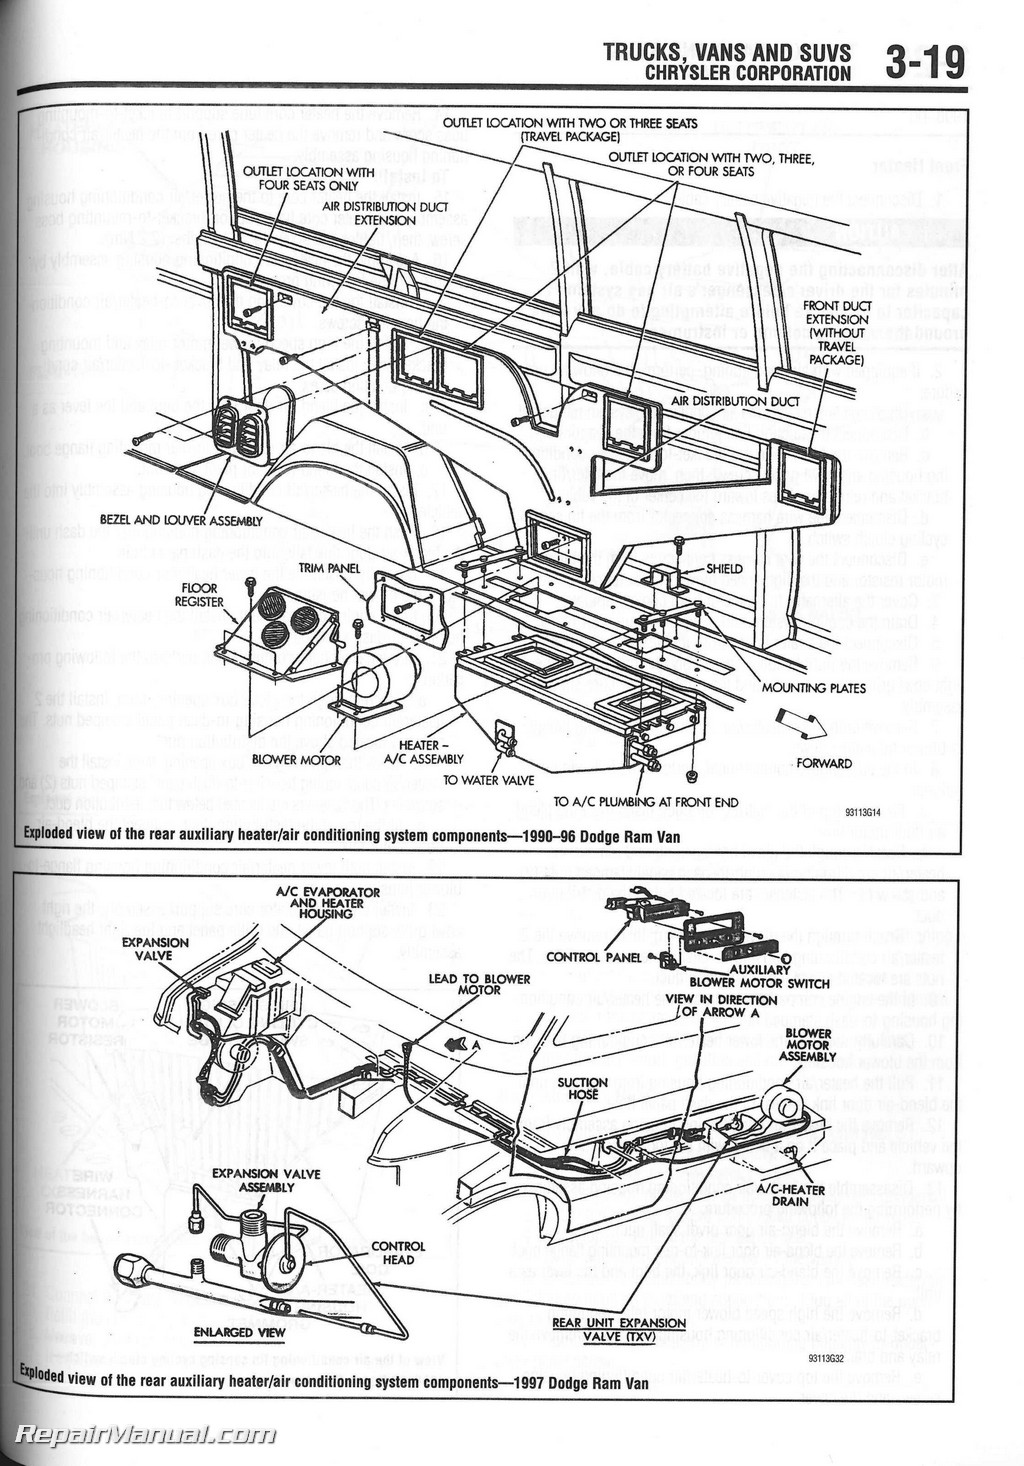 Wiring Diagram: 12 Ford 2000 Tractor Parts Diagram